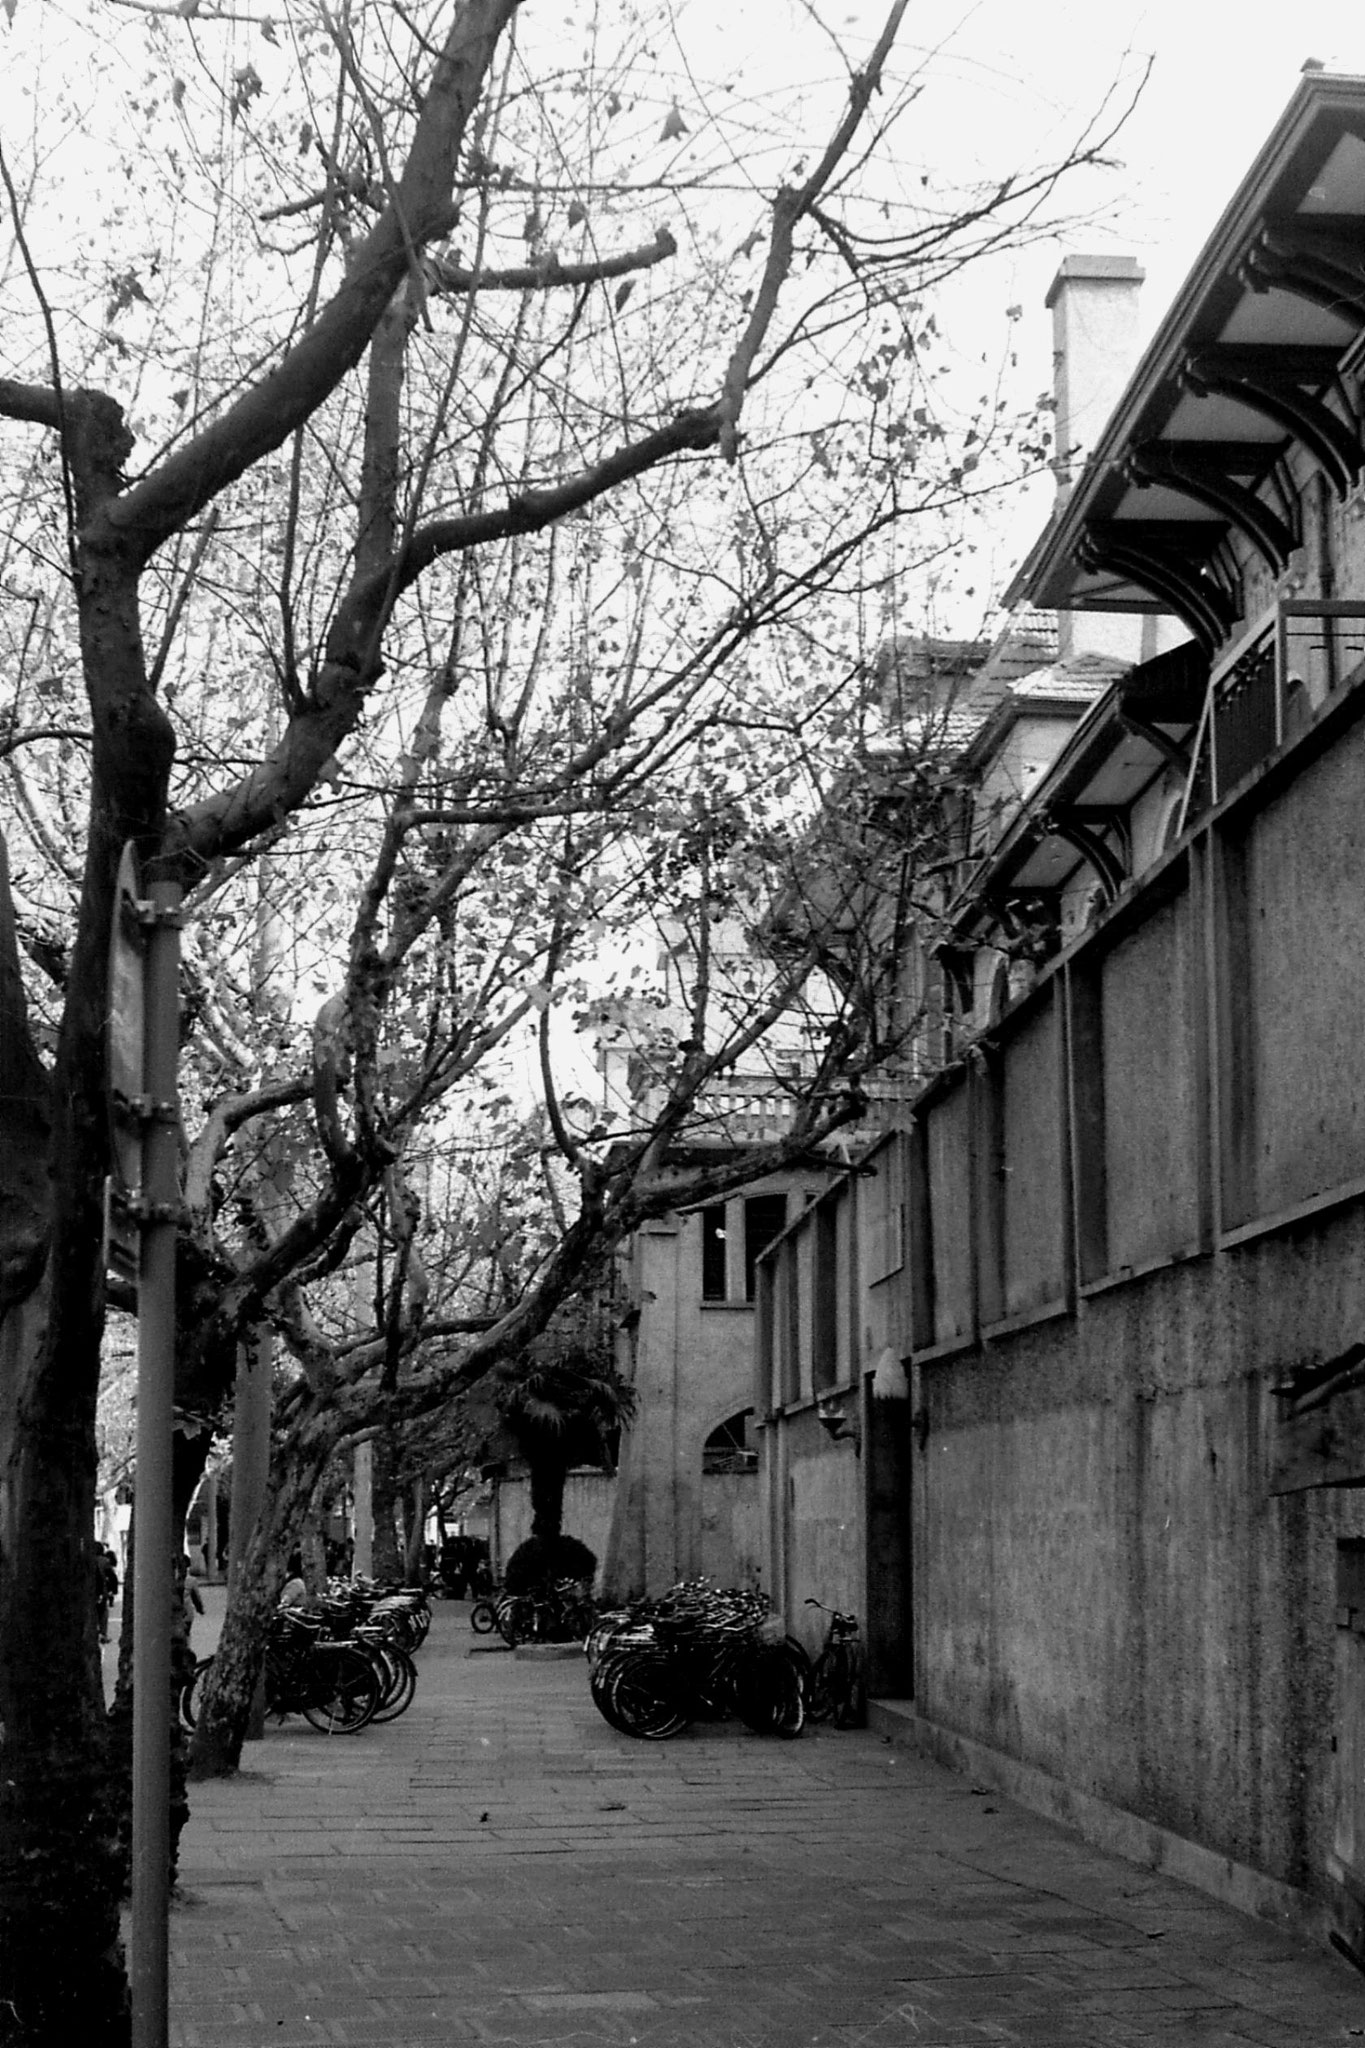 15/12/1988: 10: Nanchang Road